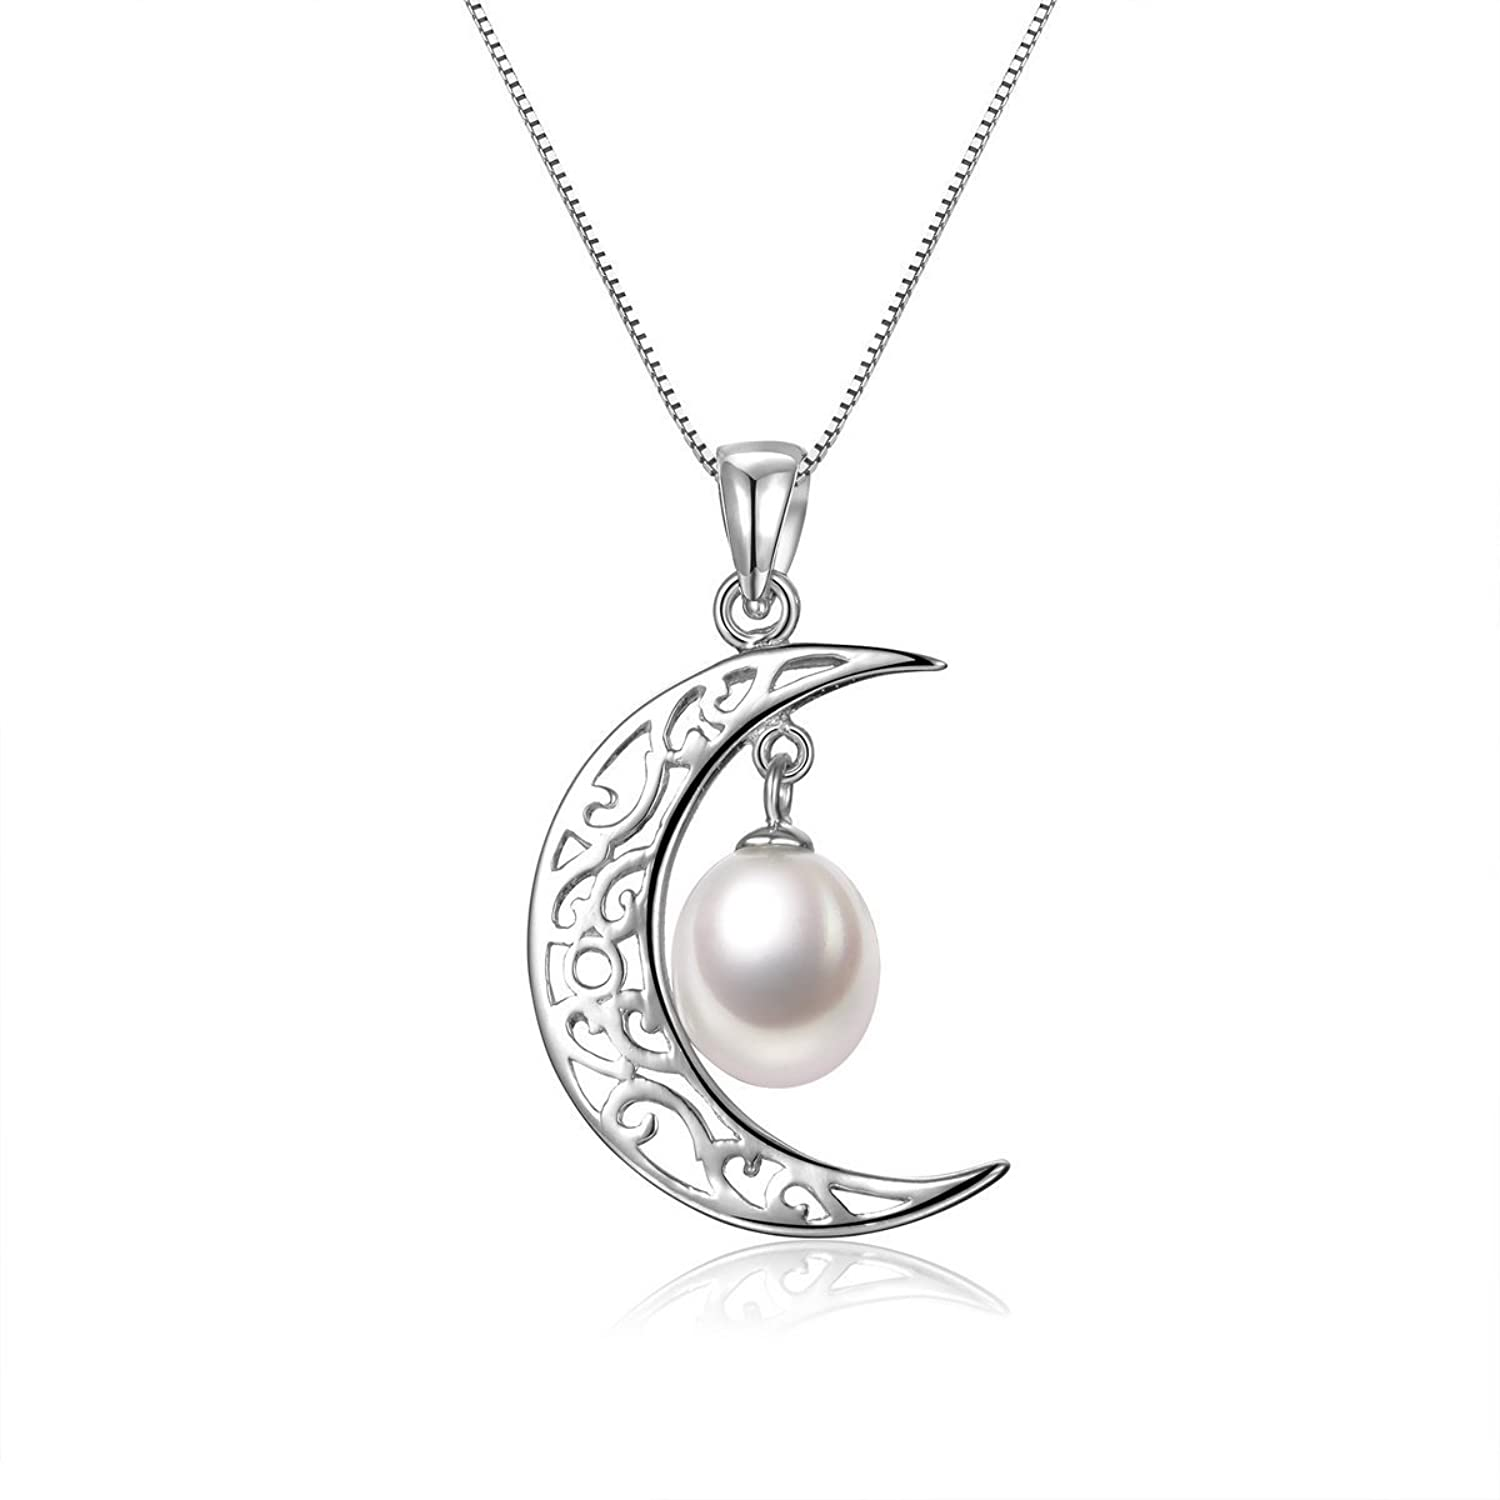 ac8cfc9f923 Pearl Necklace 925 Sterling Silver Crescent Moon with 7-8mm Freshwater  Cultured Pearl - VIKI LYNN